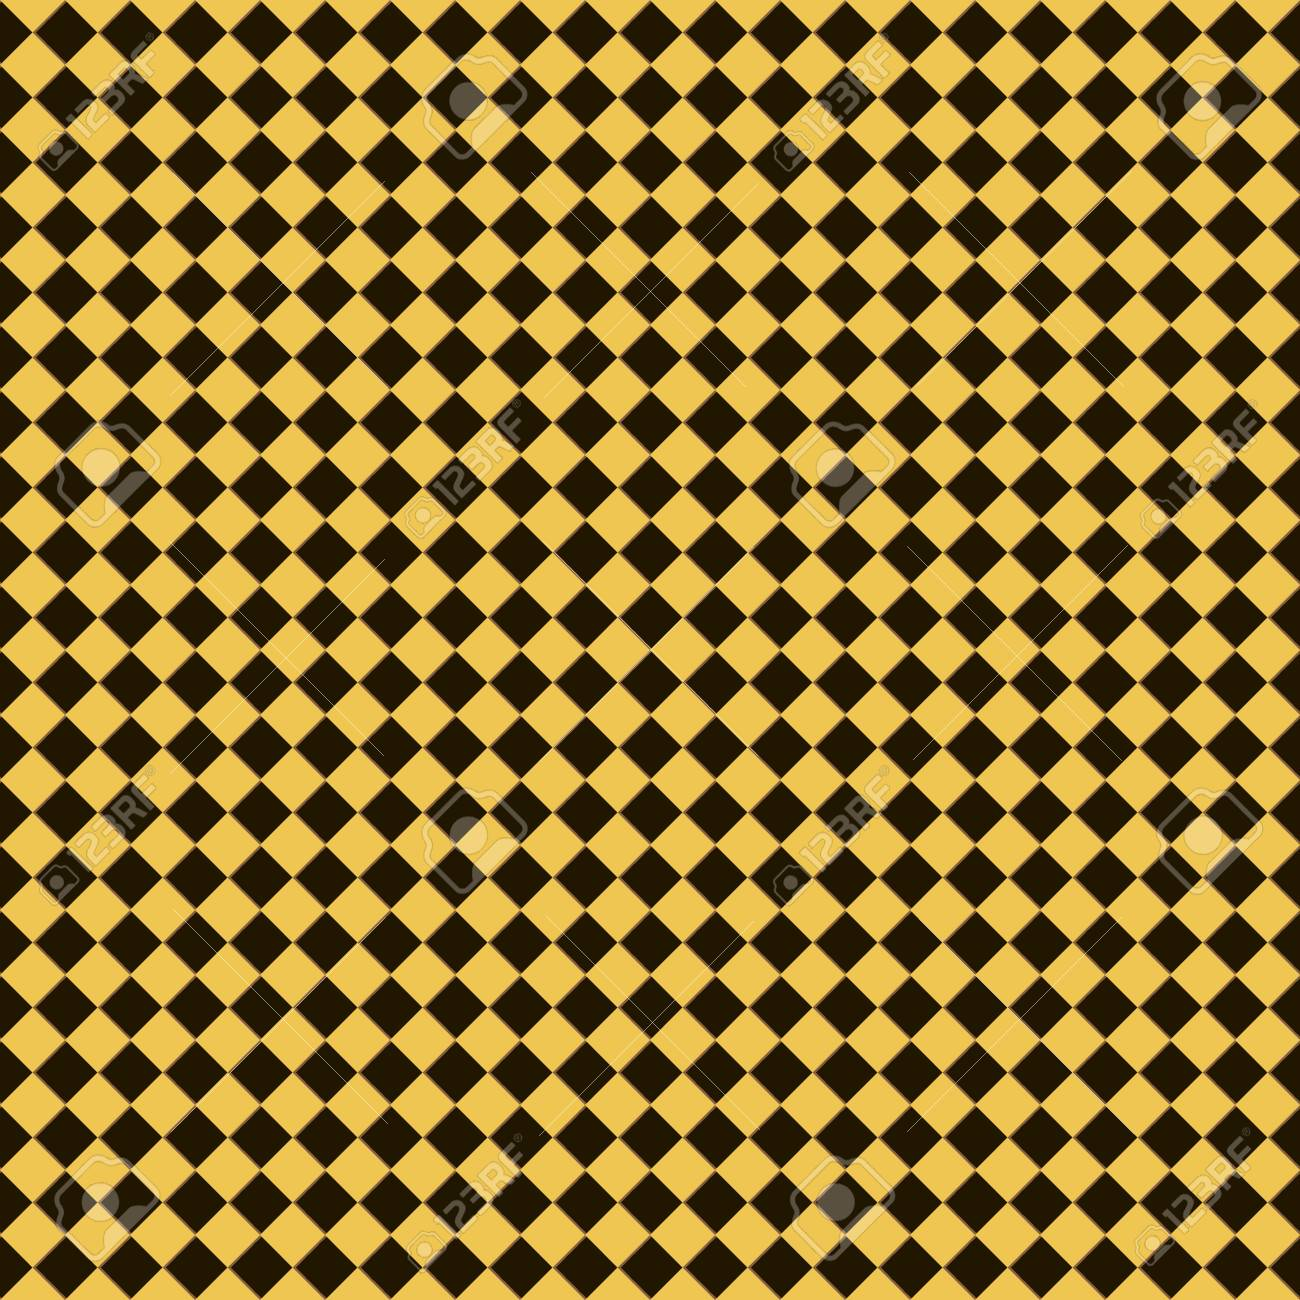 Seamless Checkered Chess Pattern In Yellow Black And Brown Colors Checkerboard Style Print